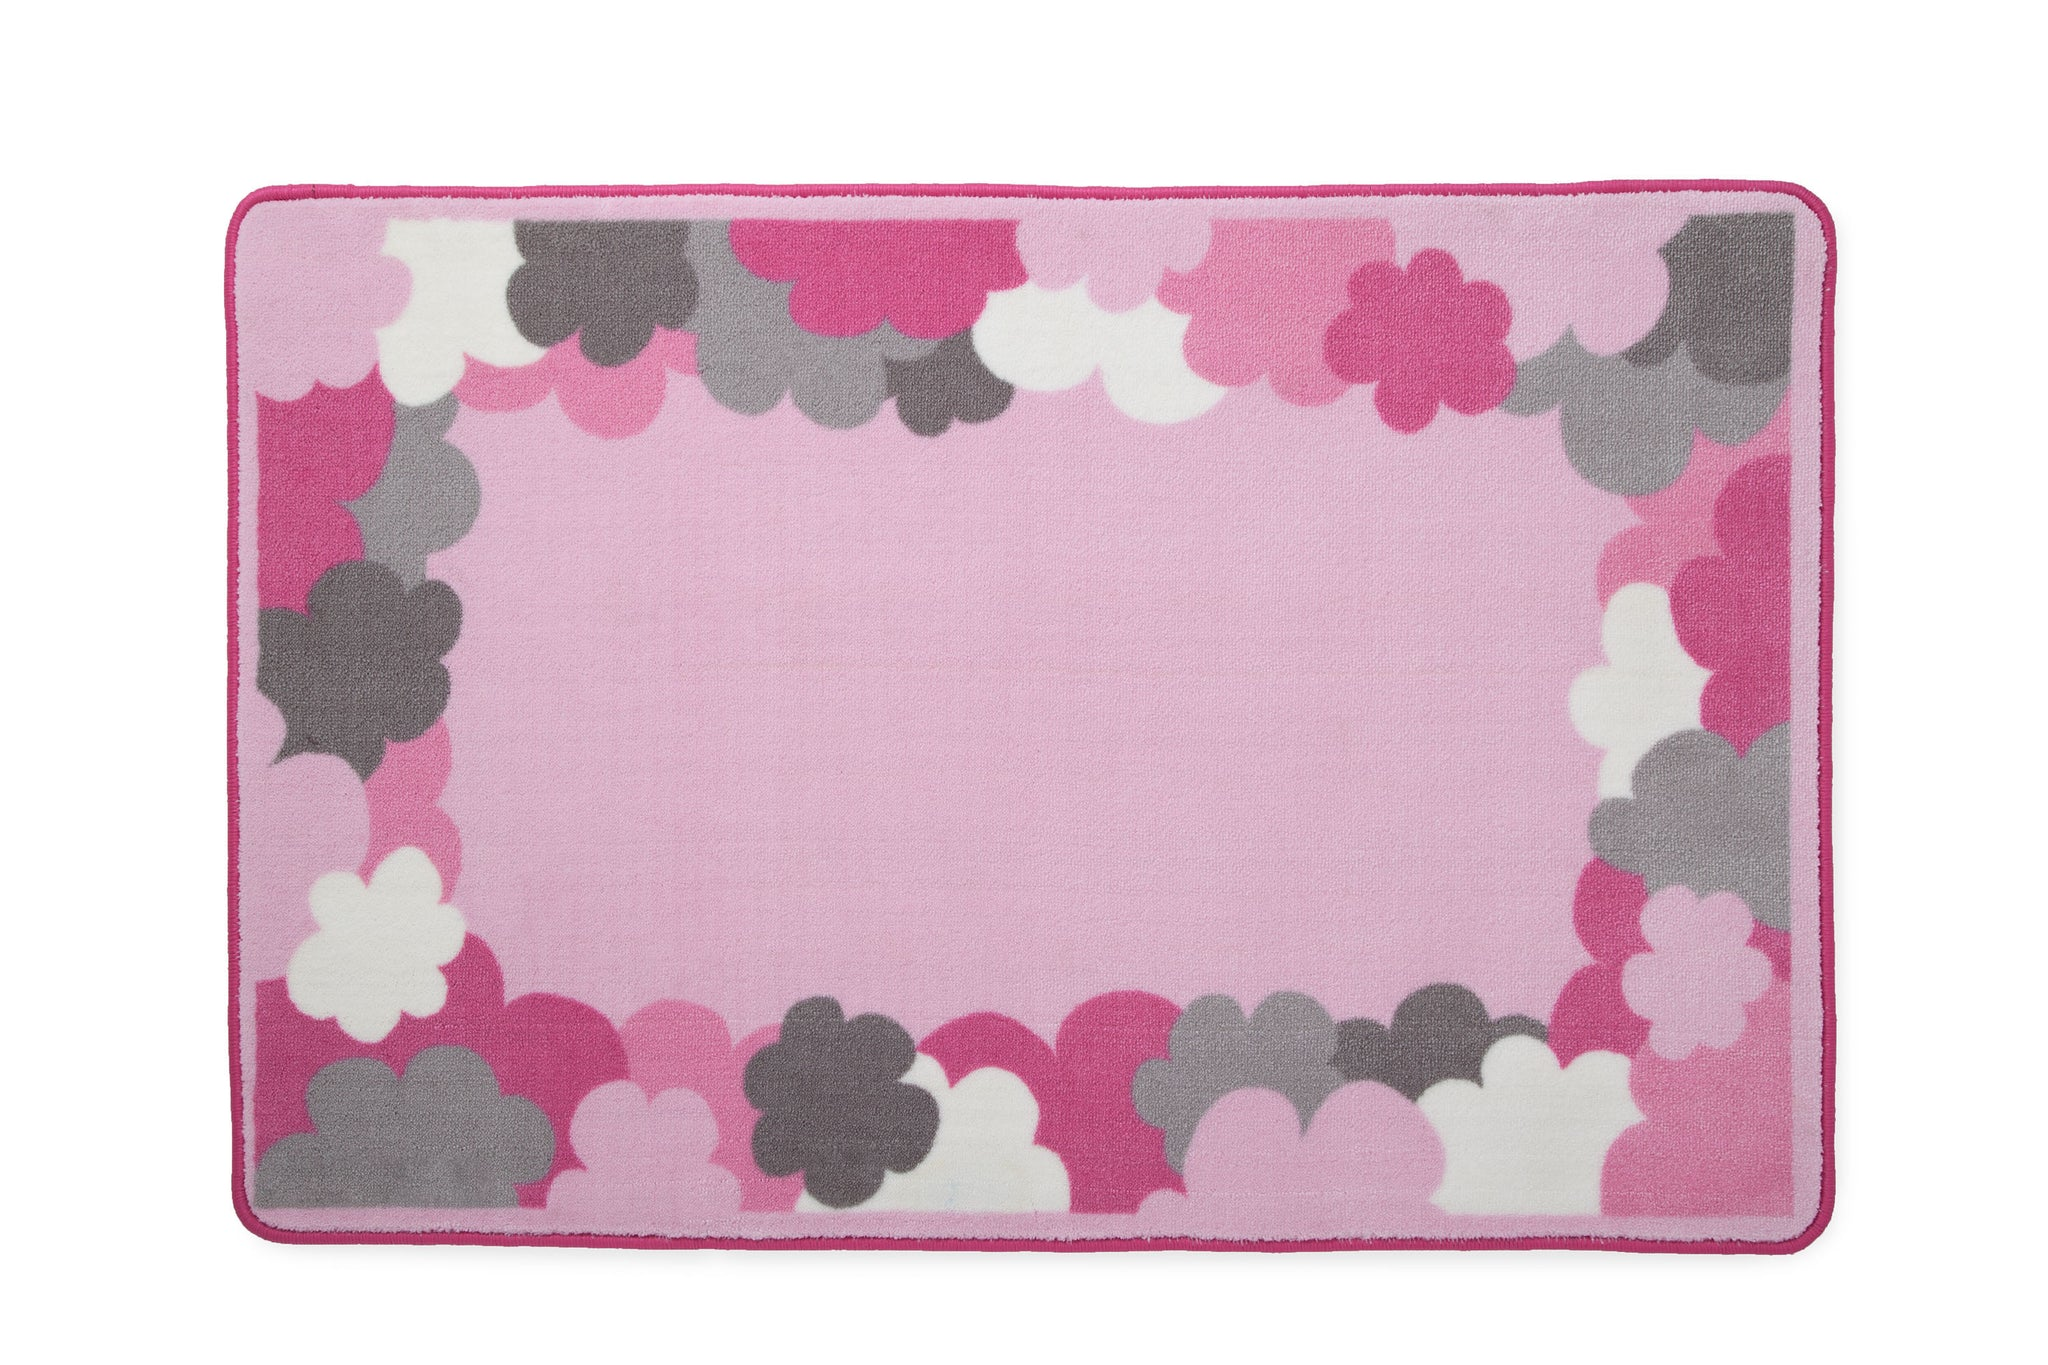 Girls Soft Kids Area Rug, Pink & Grey Clouds (2003) e2e